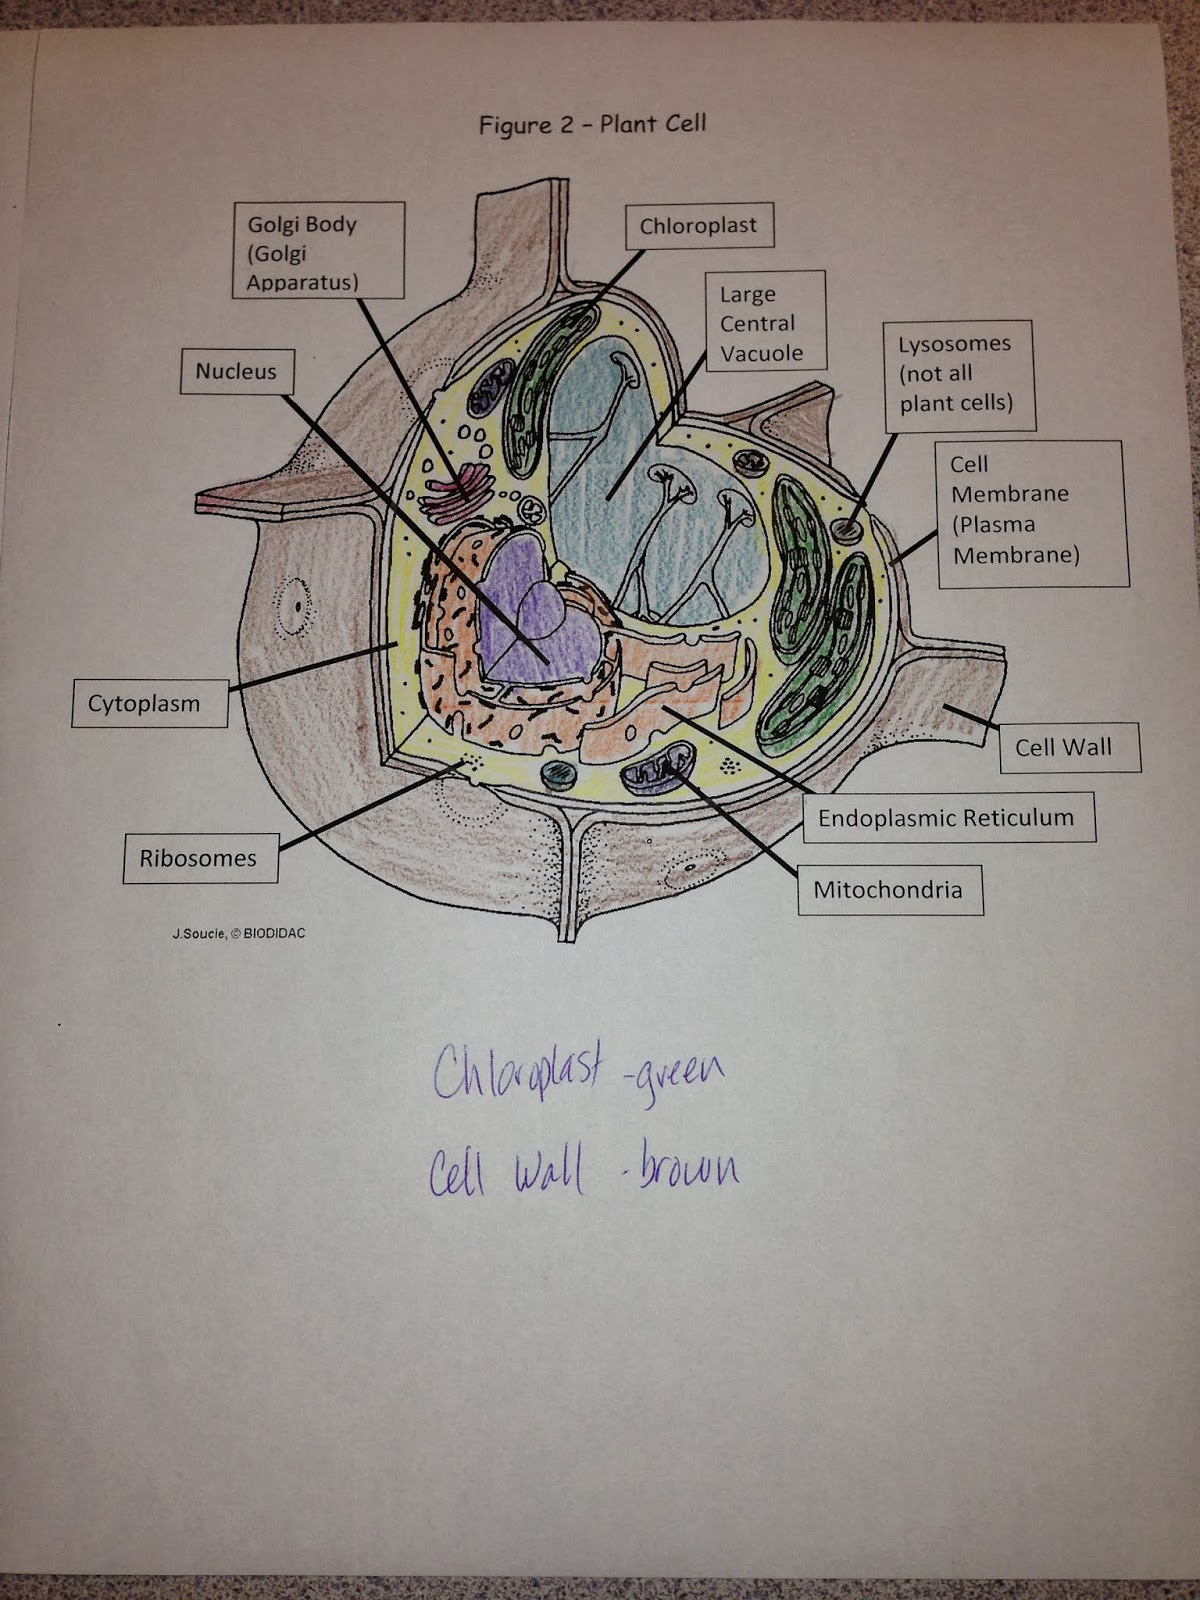 Ms. Chea's Science Class: Plant vs. Animal Cells